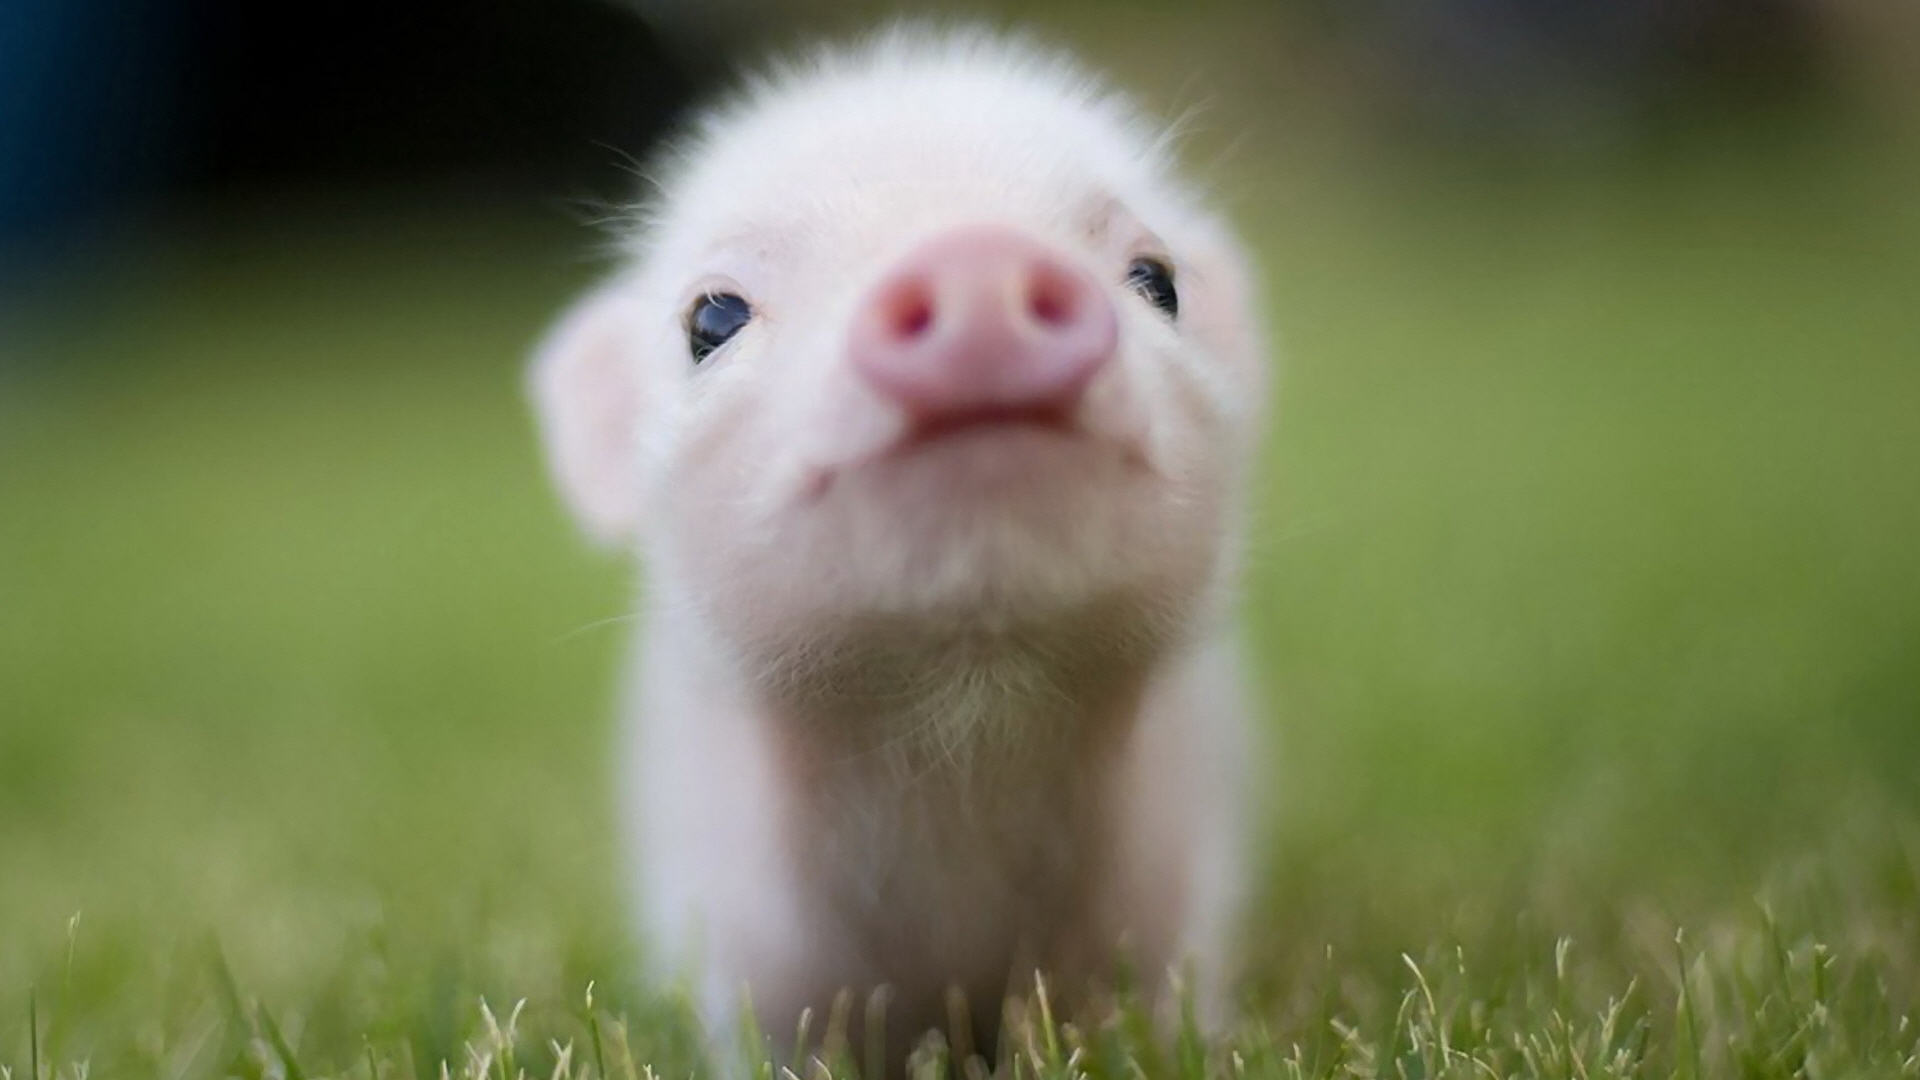 Adorable Pig Wallpaper